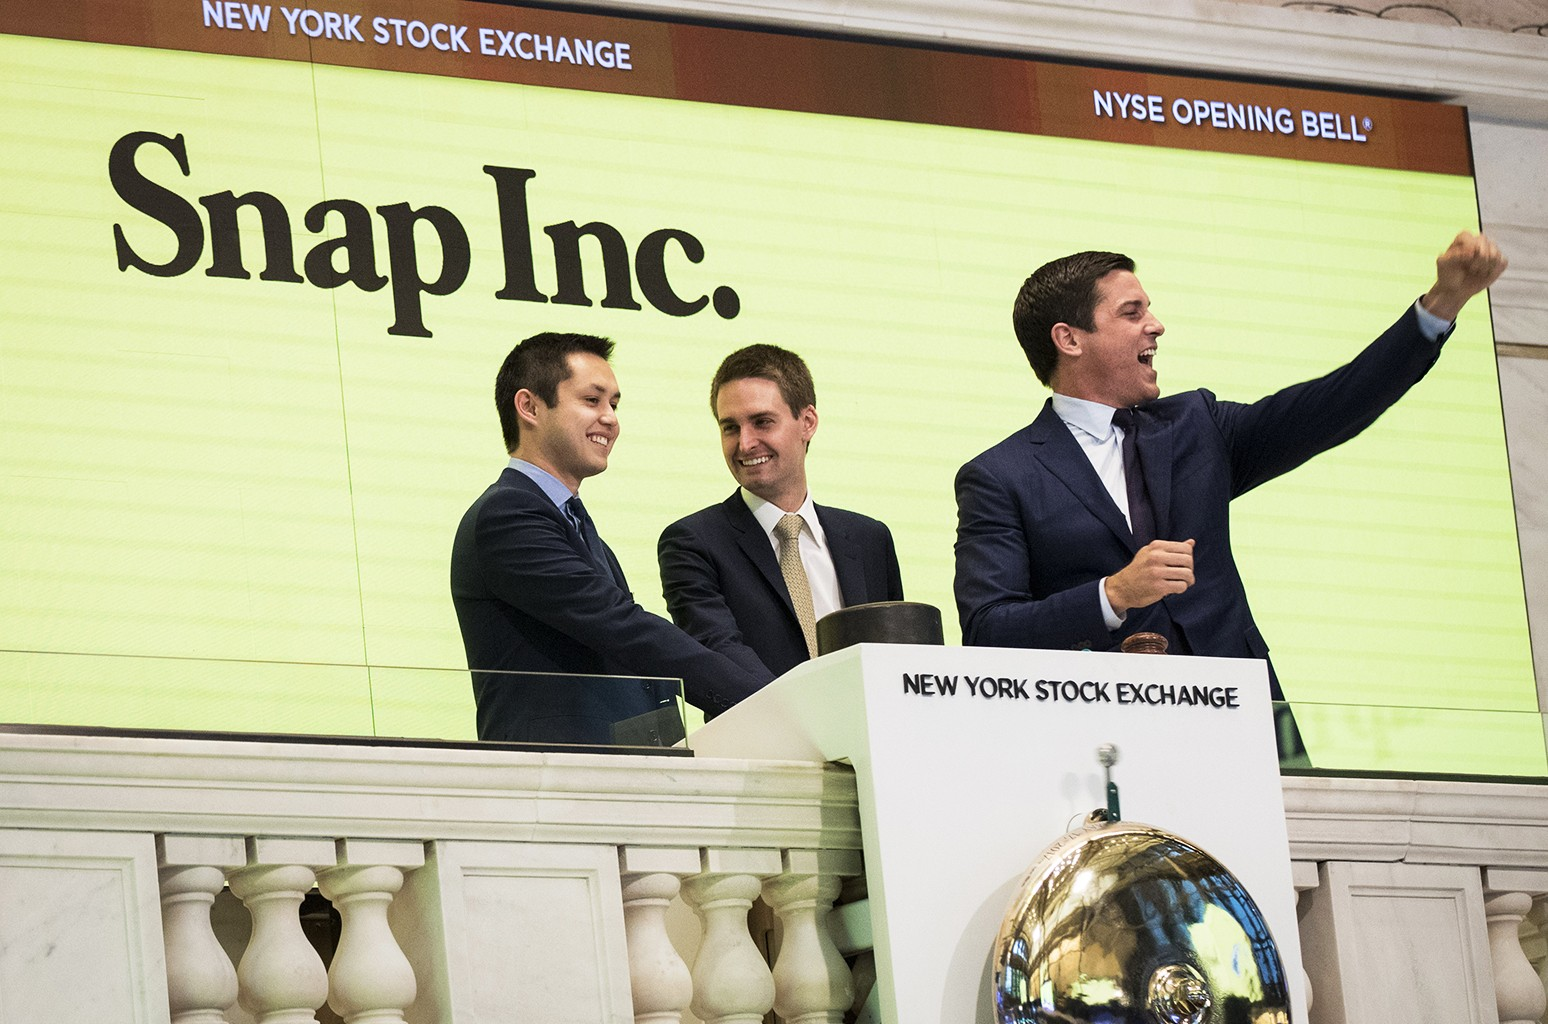 Snapchat co-founders Bobby Murphy, chief technology officer of Snap Inc., and Evan Spiegel, chief executive officer of Snap Inc., ring the opening bell as Thomas Farley, president of the NYSE, looks on, on March 2, 2017 in New York City.